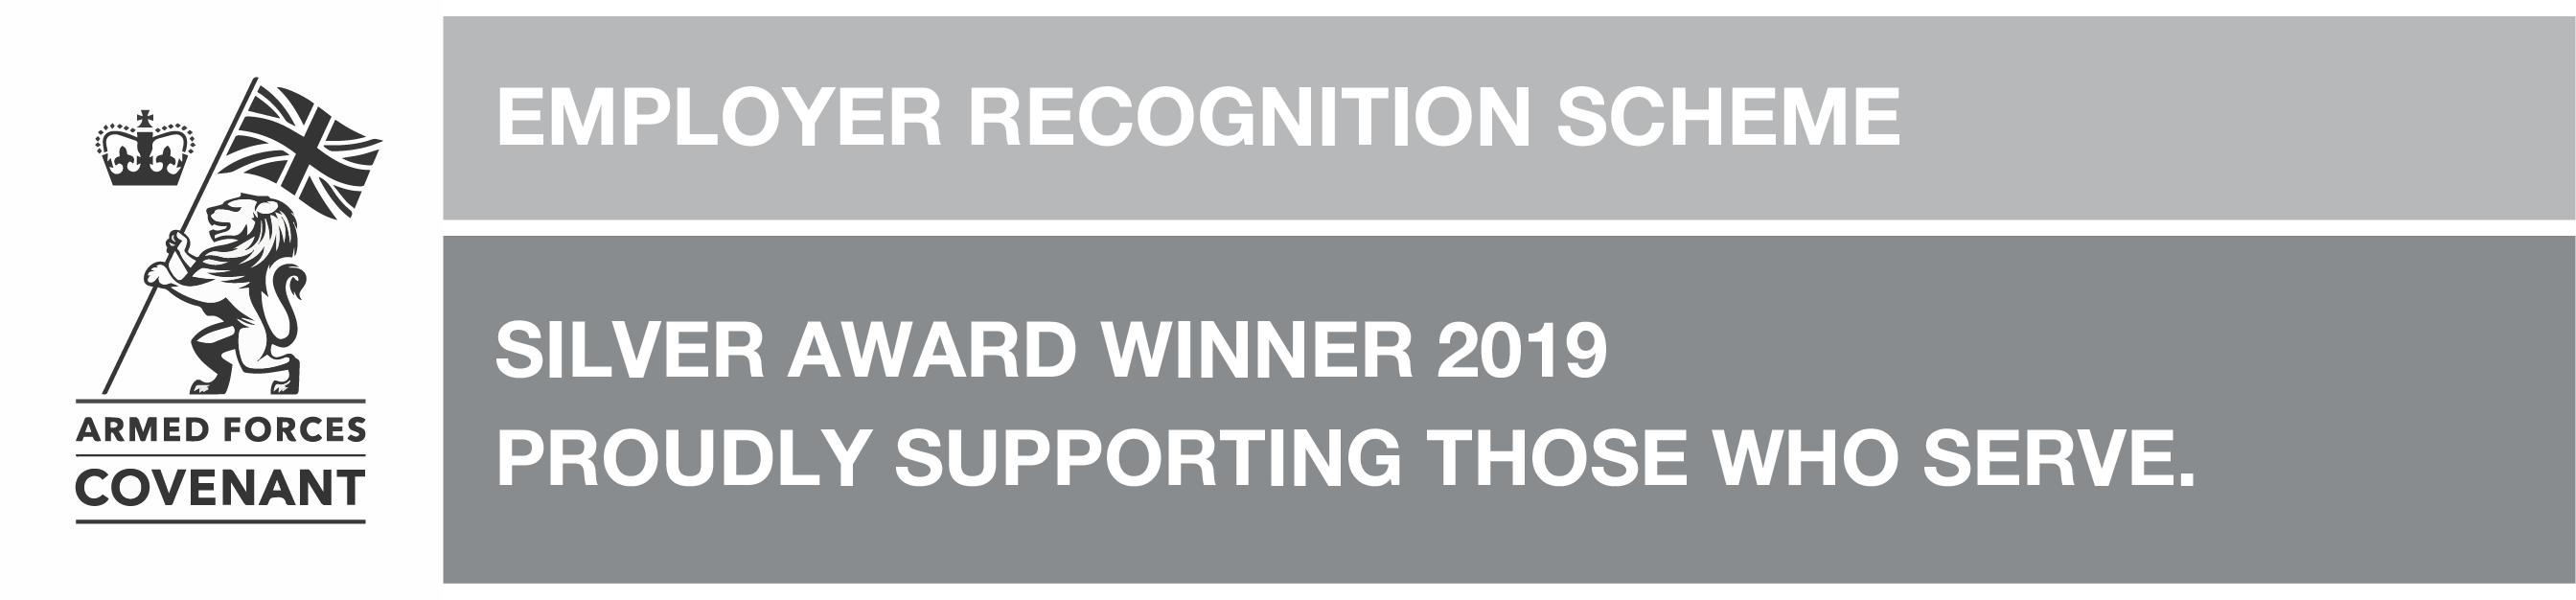 Armed Forces Convenant. Employer Recognition Scheme. Silver Award Winner 2019. Proudly supporting those who serve.